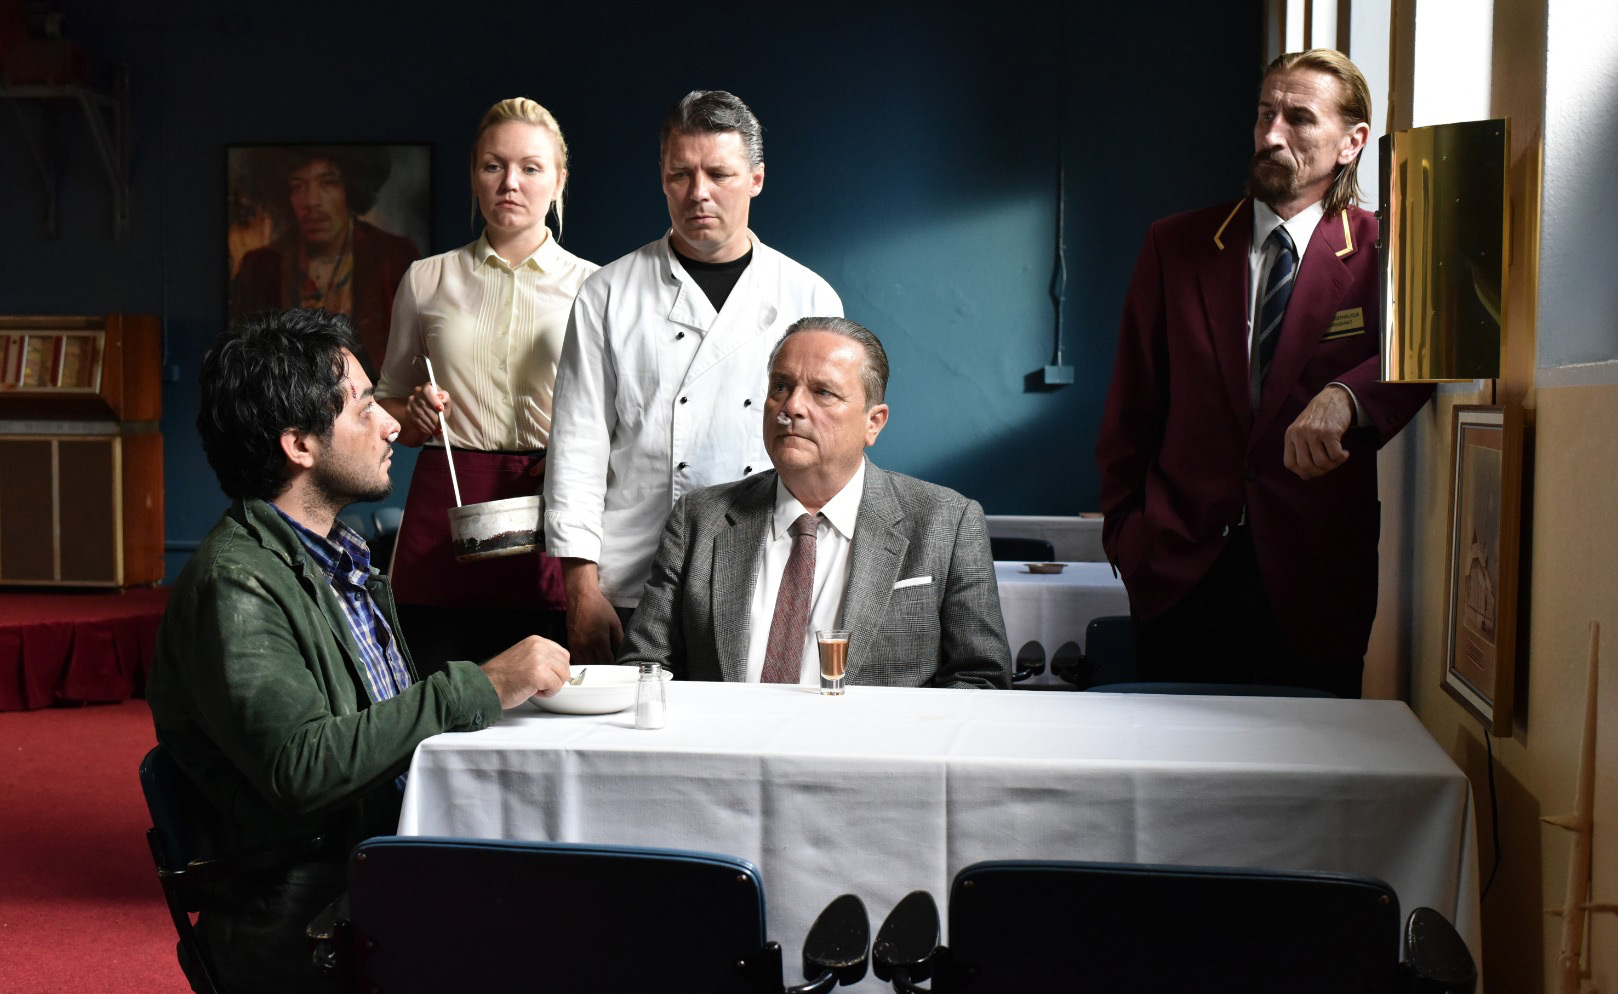 Syrian refugee gets Finnish welcome in Kaurismäki's offbeat, downbeat and oddly uplifting film.